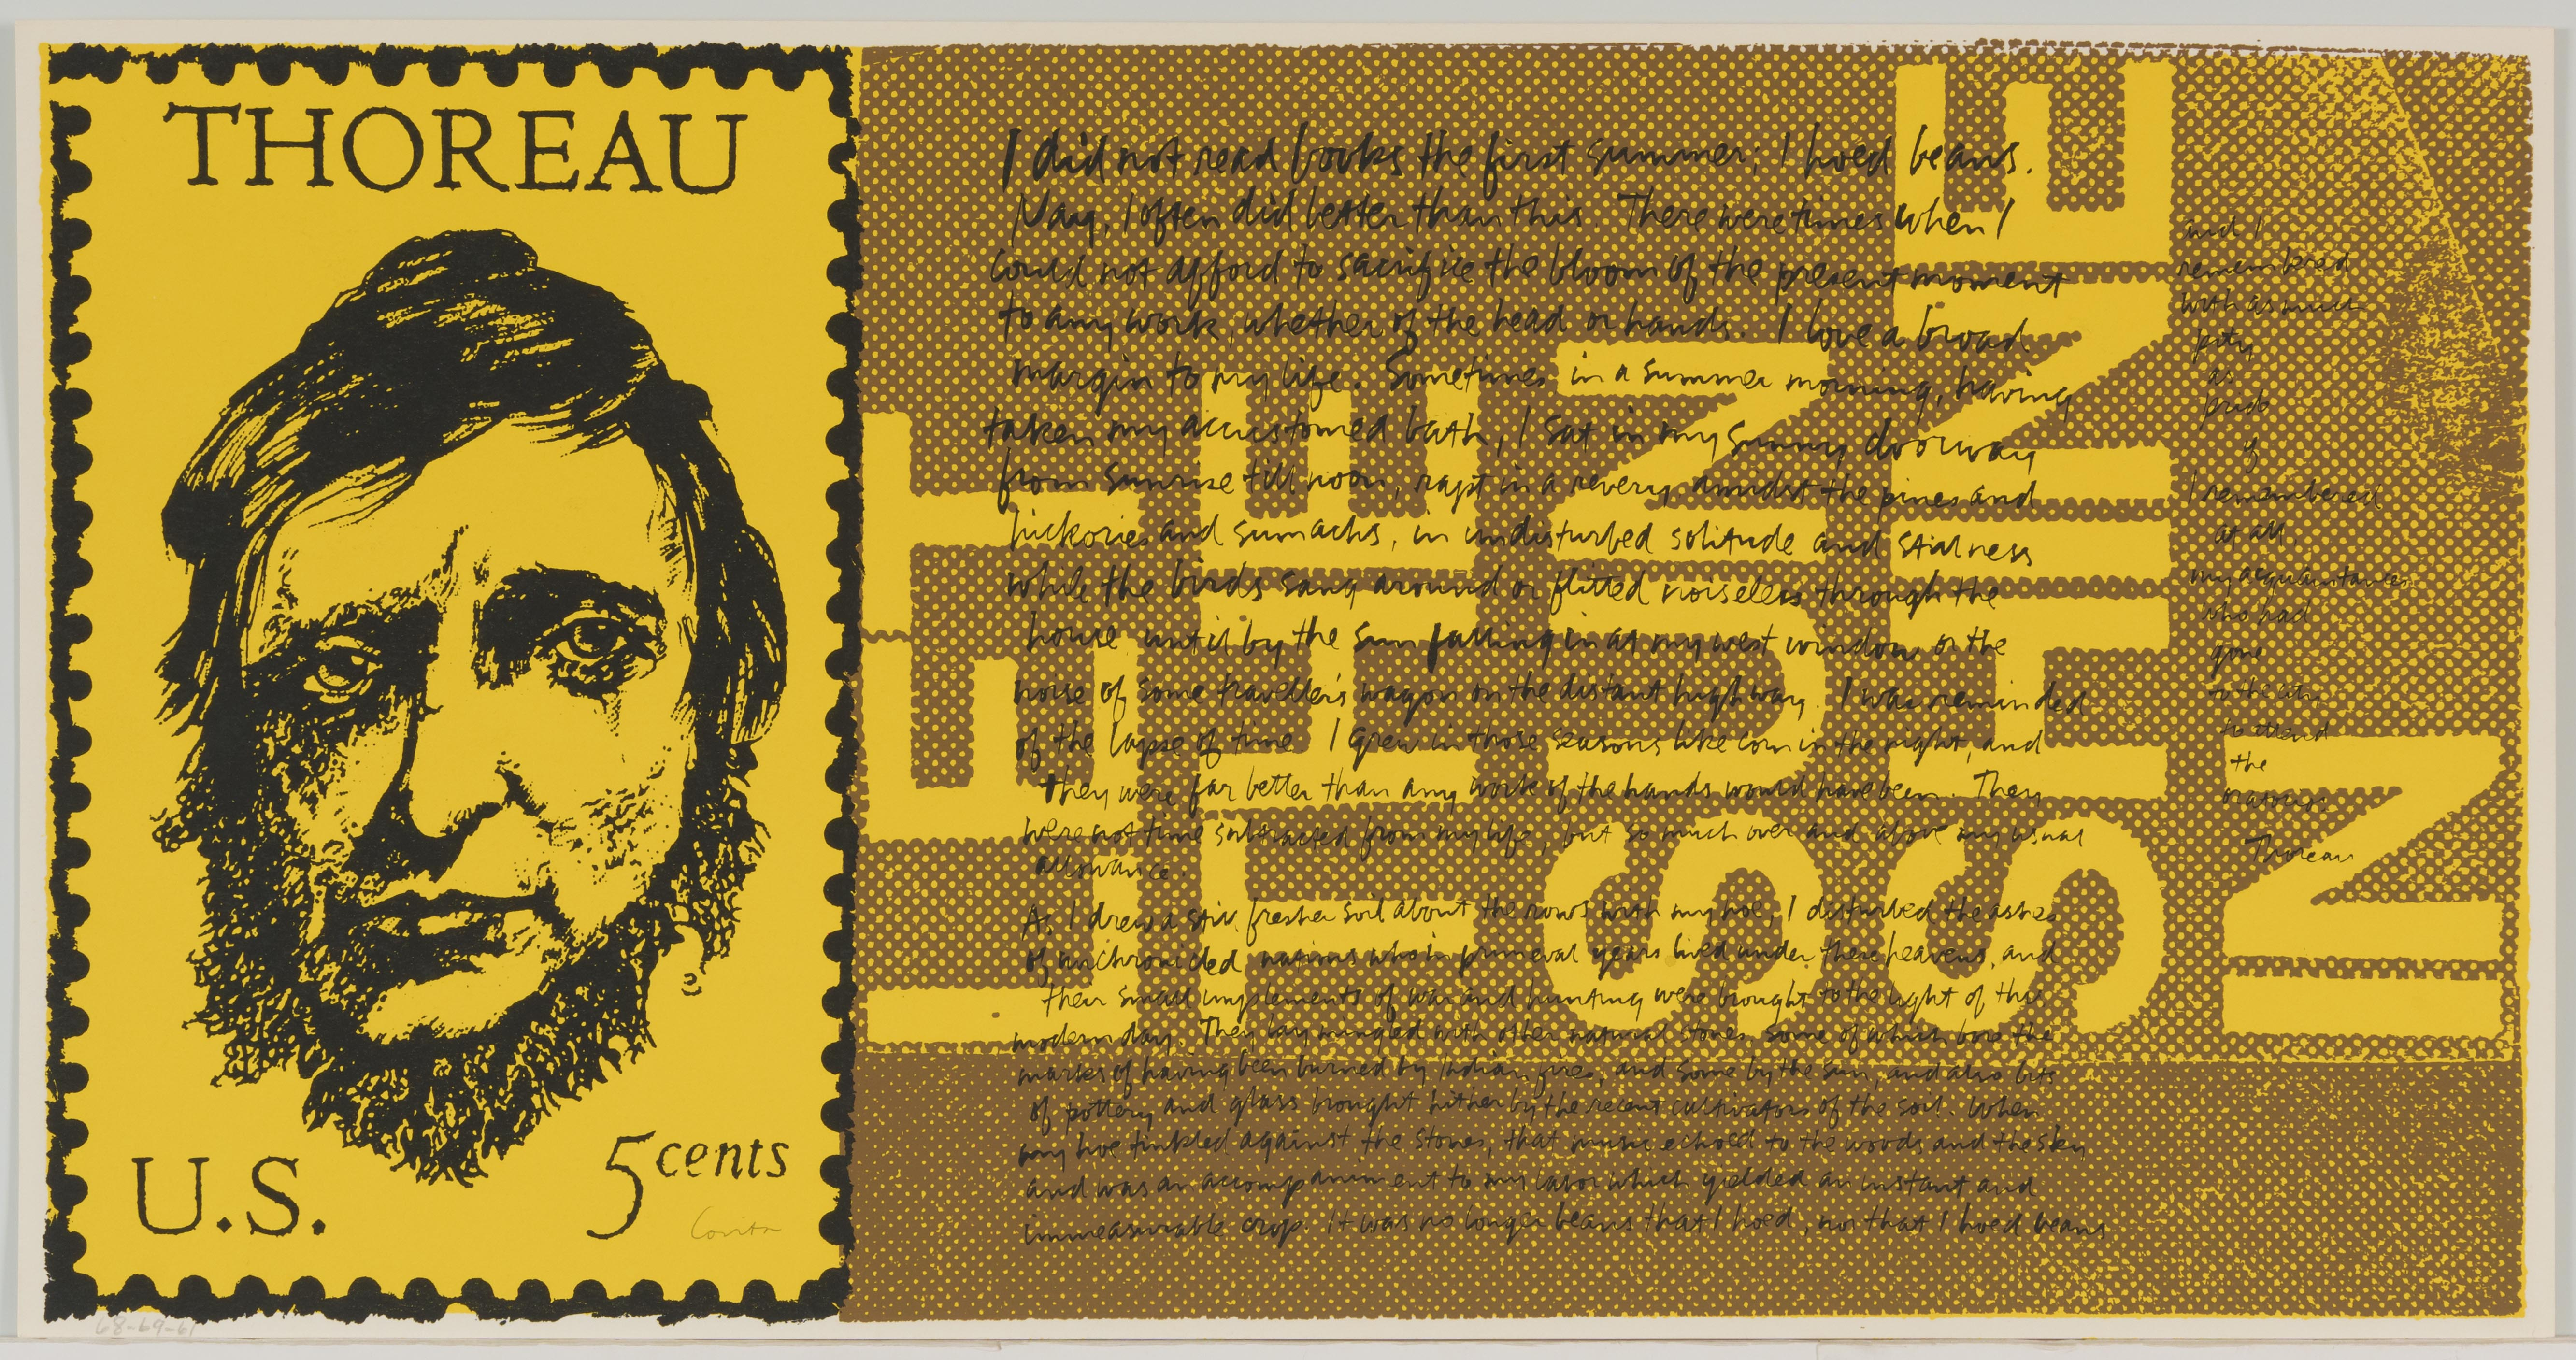 Corita Kent, the stamp of thoreau, 1969